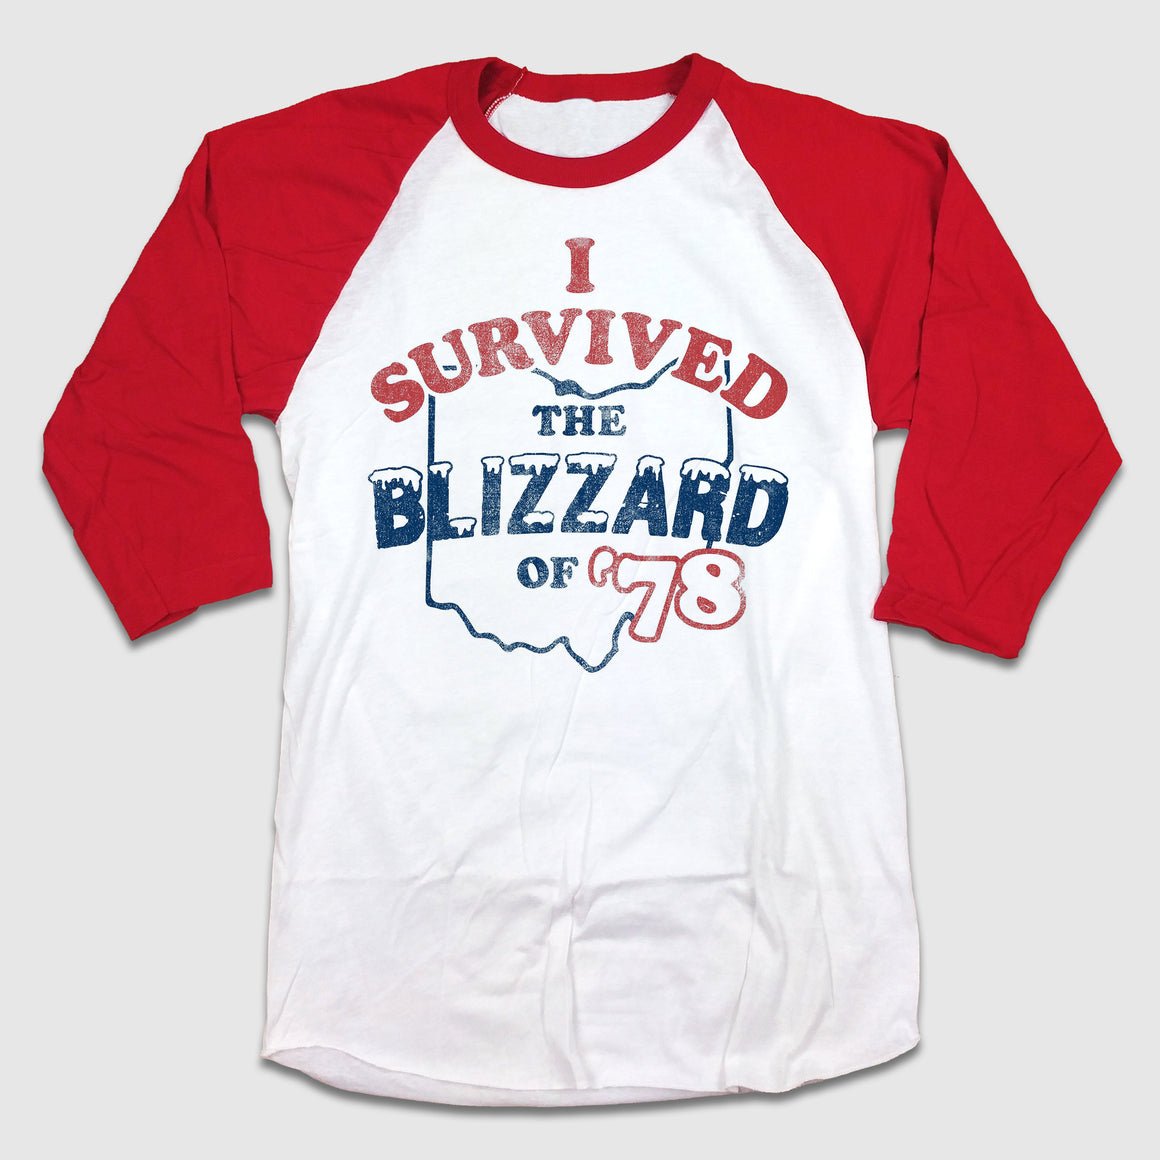 Blizzard of 78 3/4 Raglan - Cincy Shirts